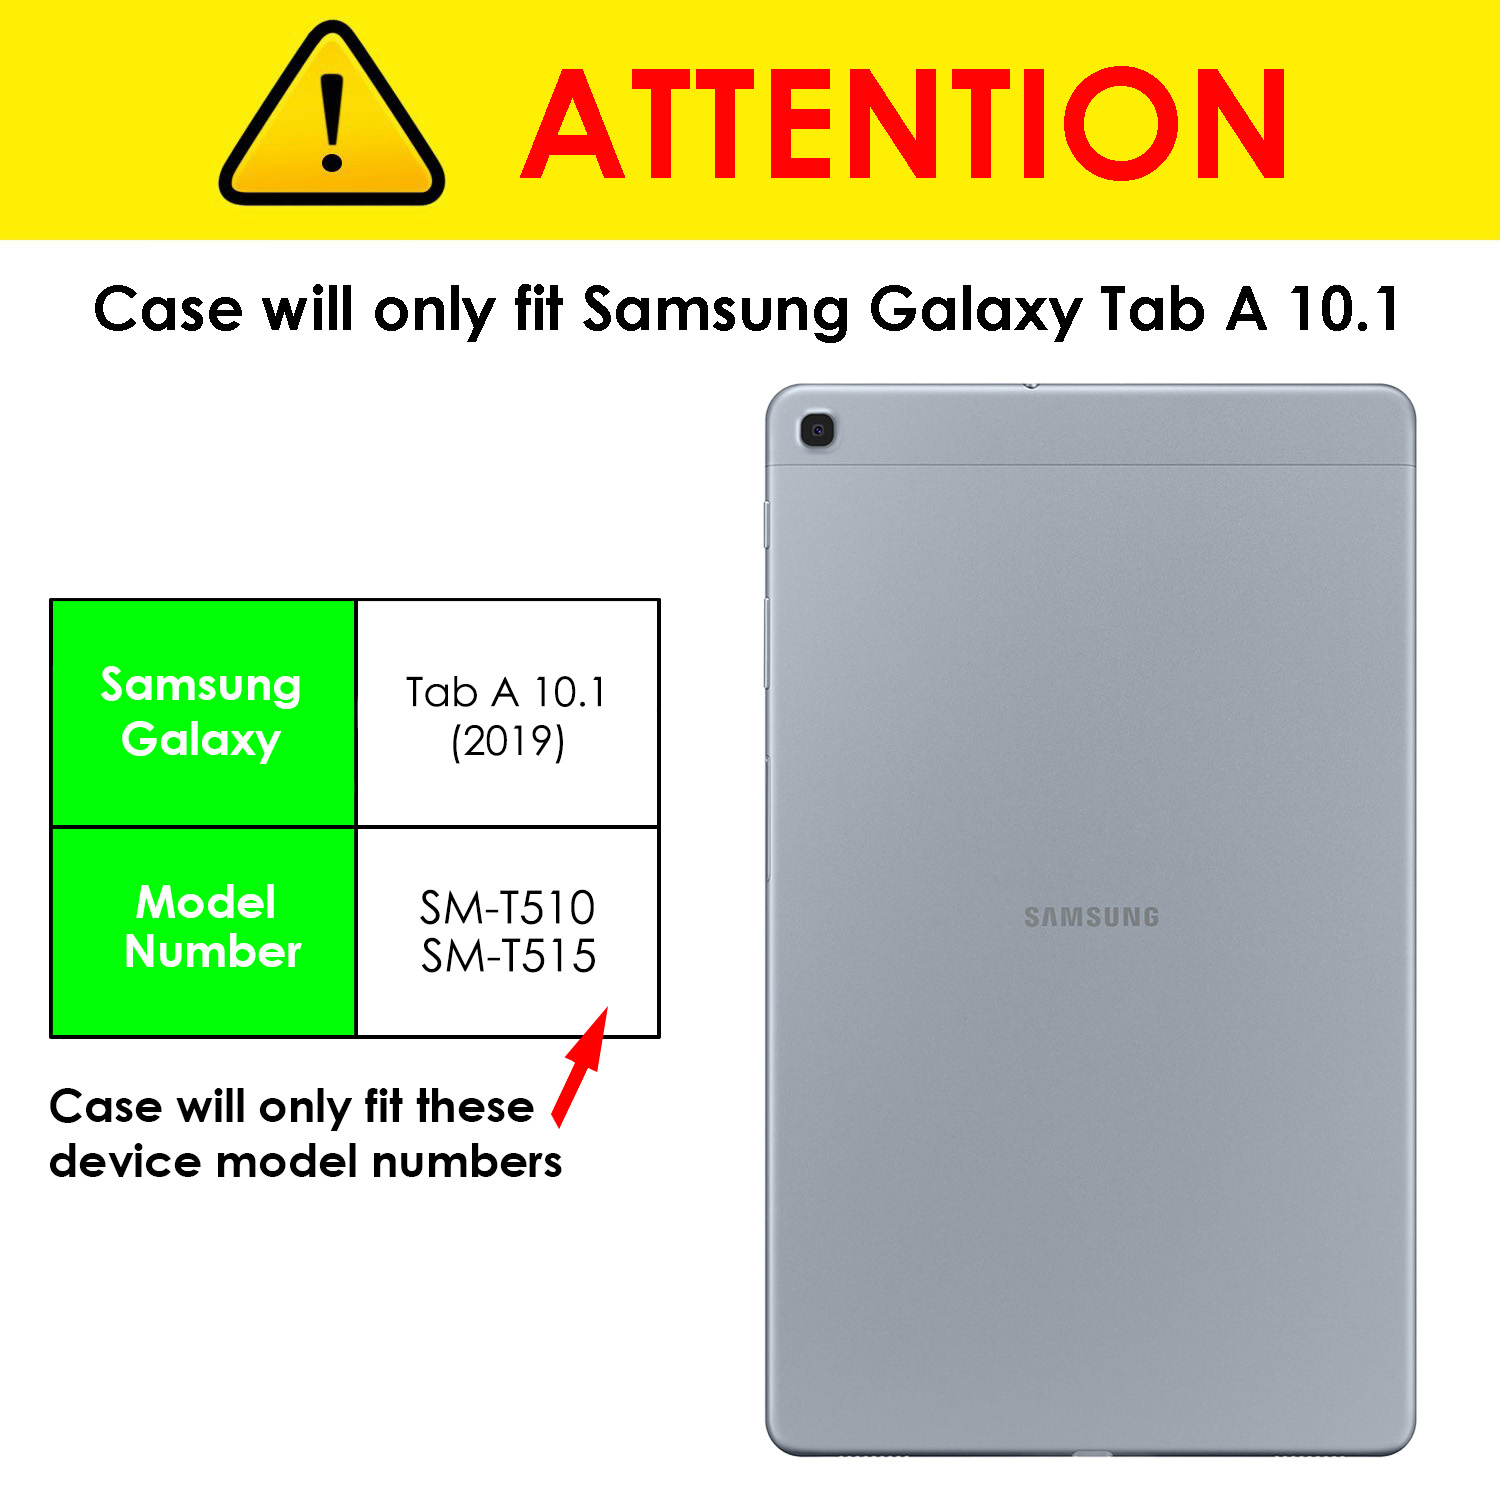 miniature 12 - Samsung Galaxy Tab A 10.1 2019 Étui Magnétique Protection & Support + Stylet